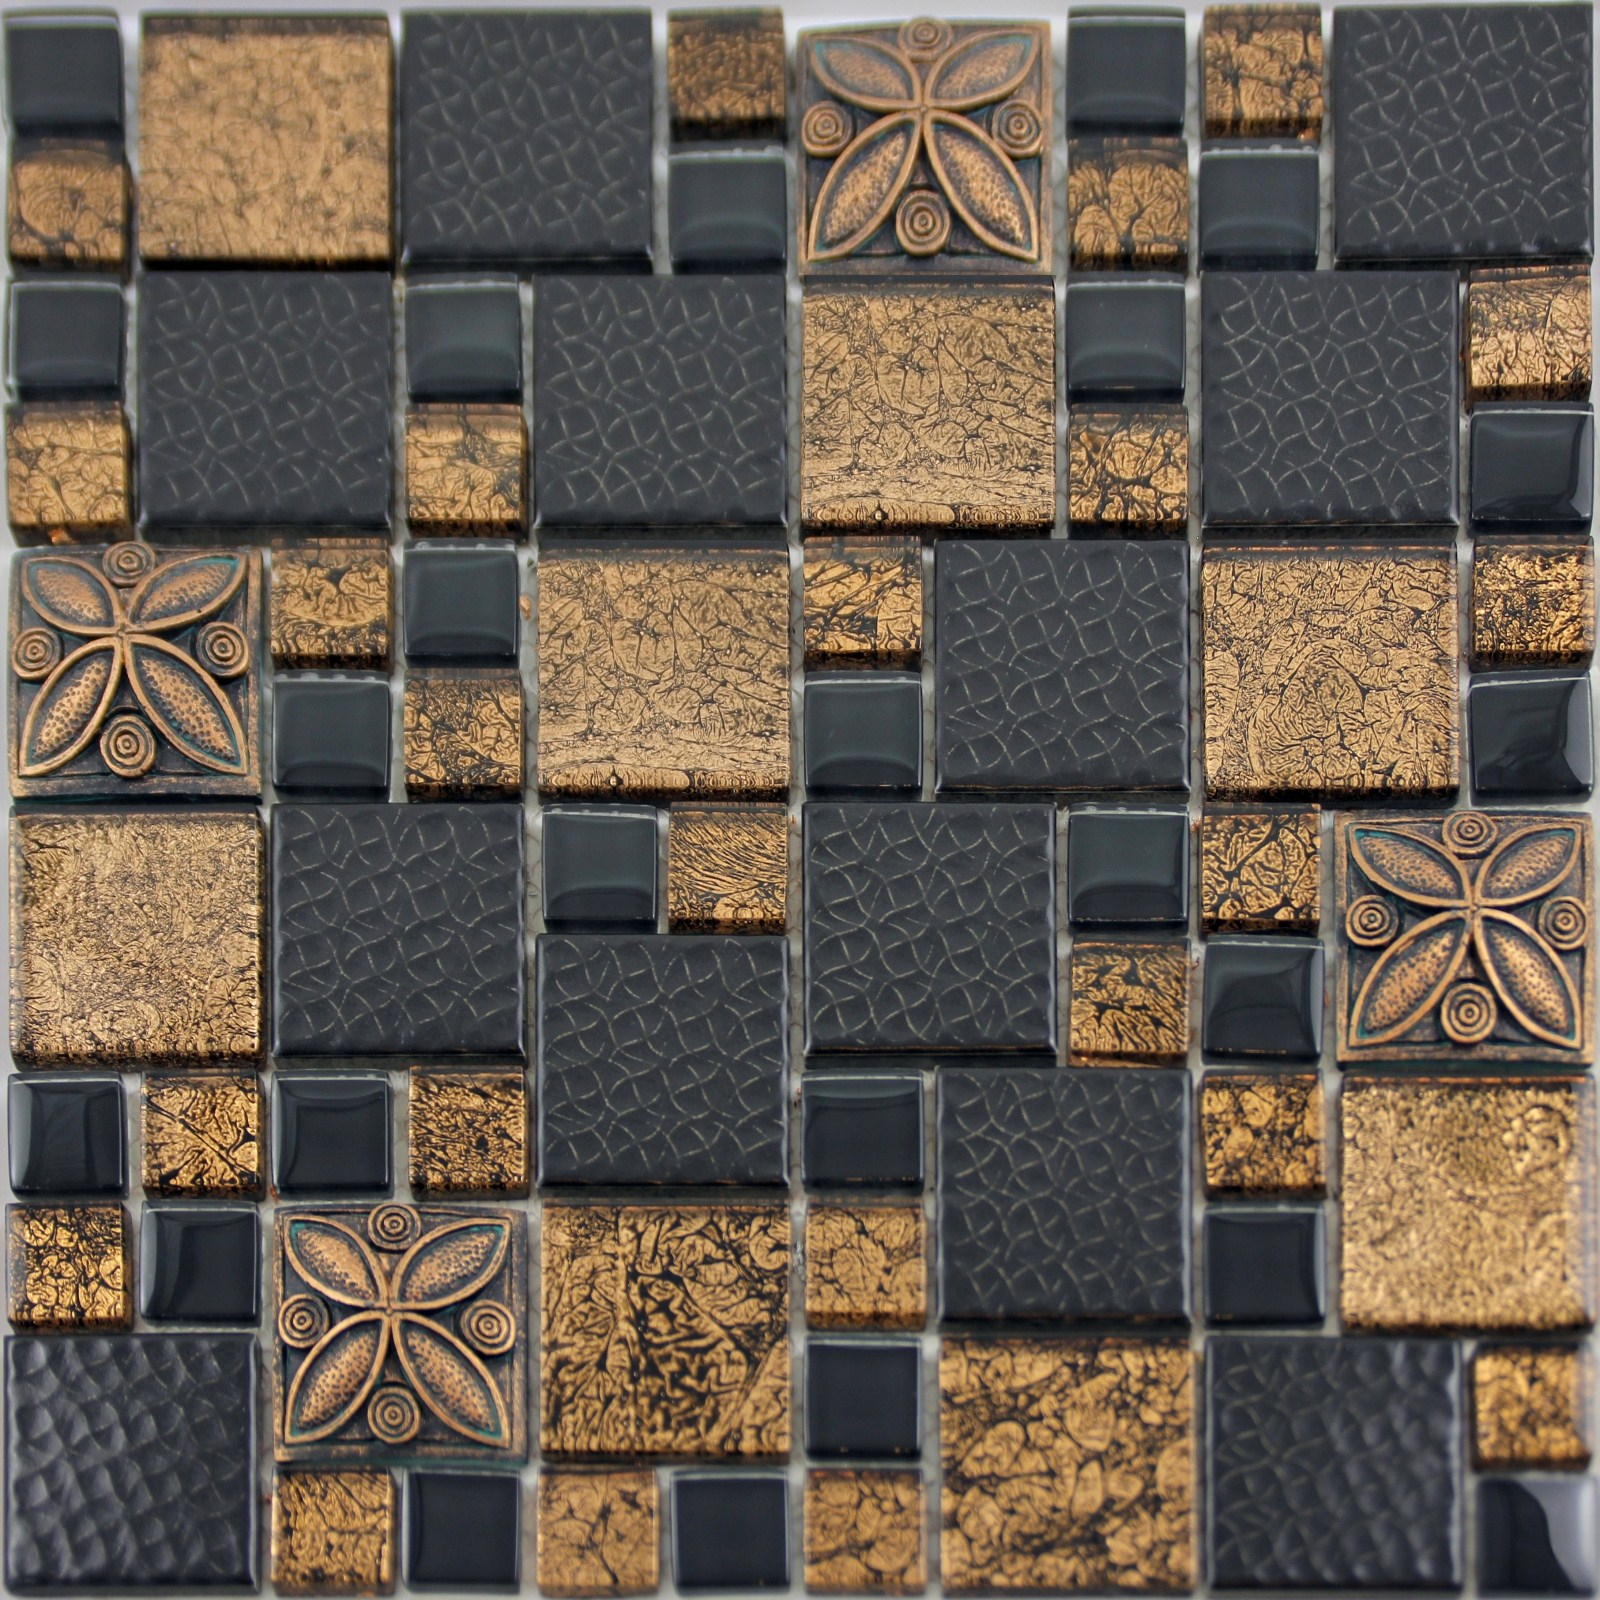 Black porcelain mosaic tile designs gold glass tiles bathroom wall plated ceramic kitchen - Mosaic kitchen ...